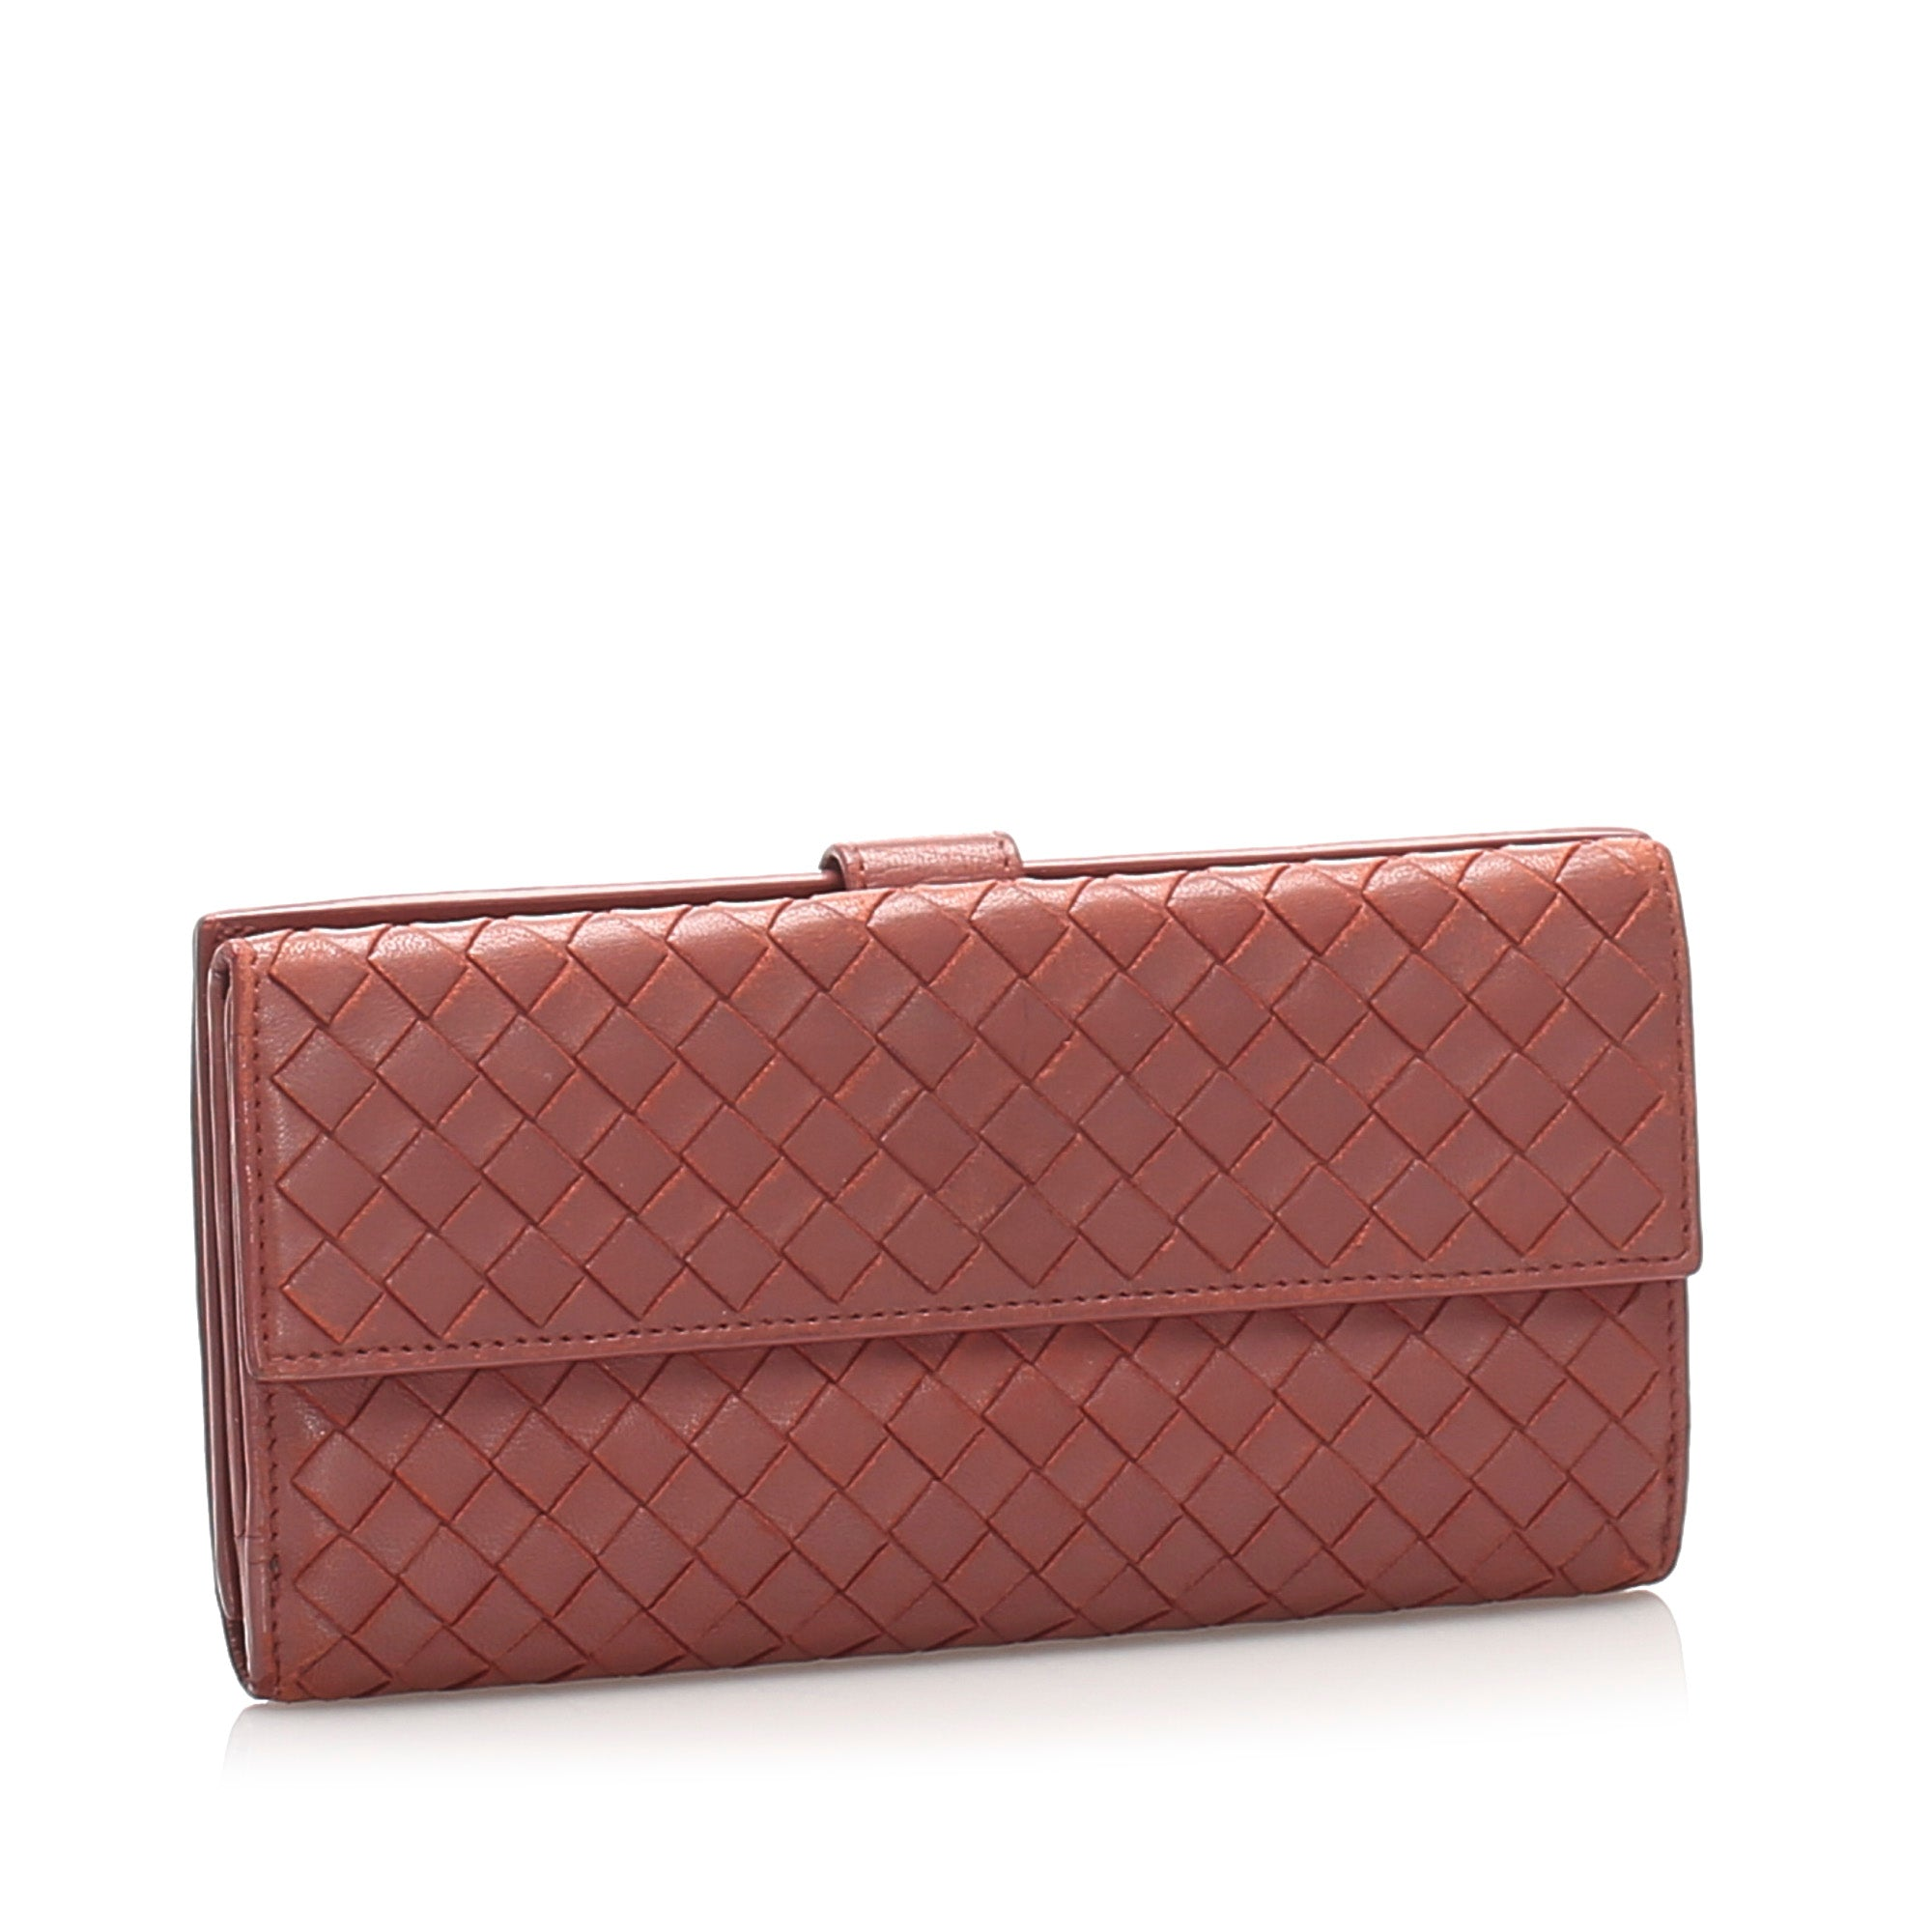 Bottega Veneta Red Intrecciato Leather Long Wallet